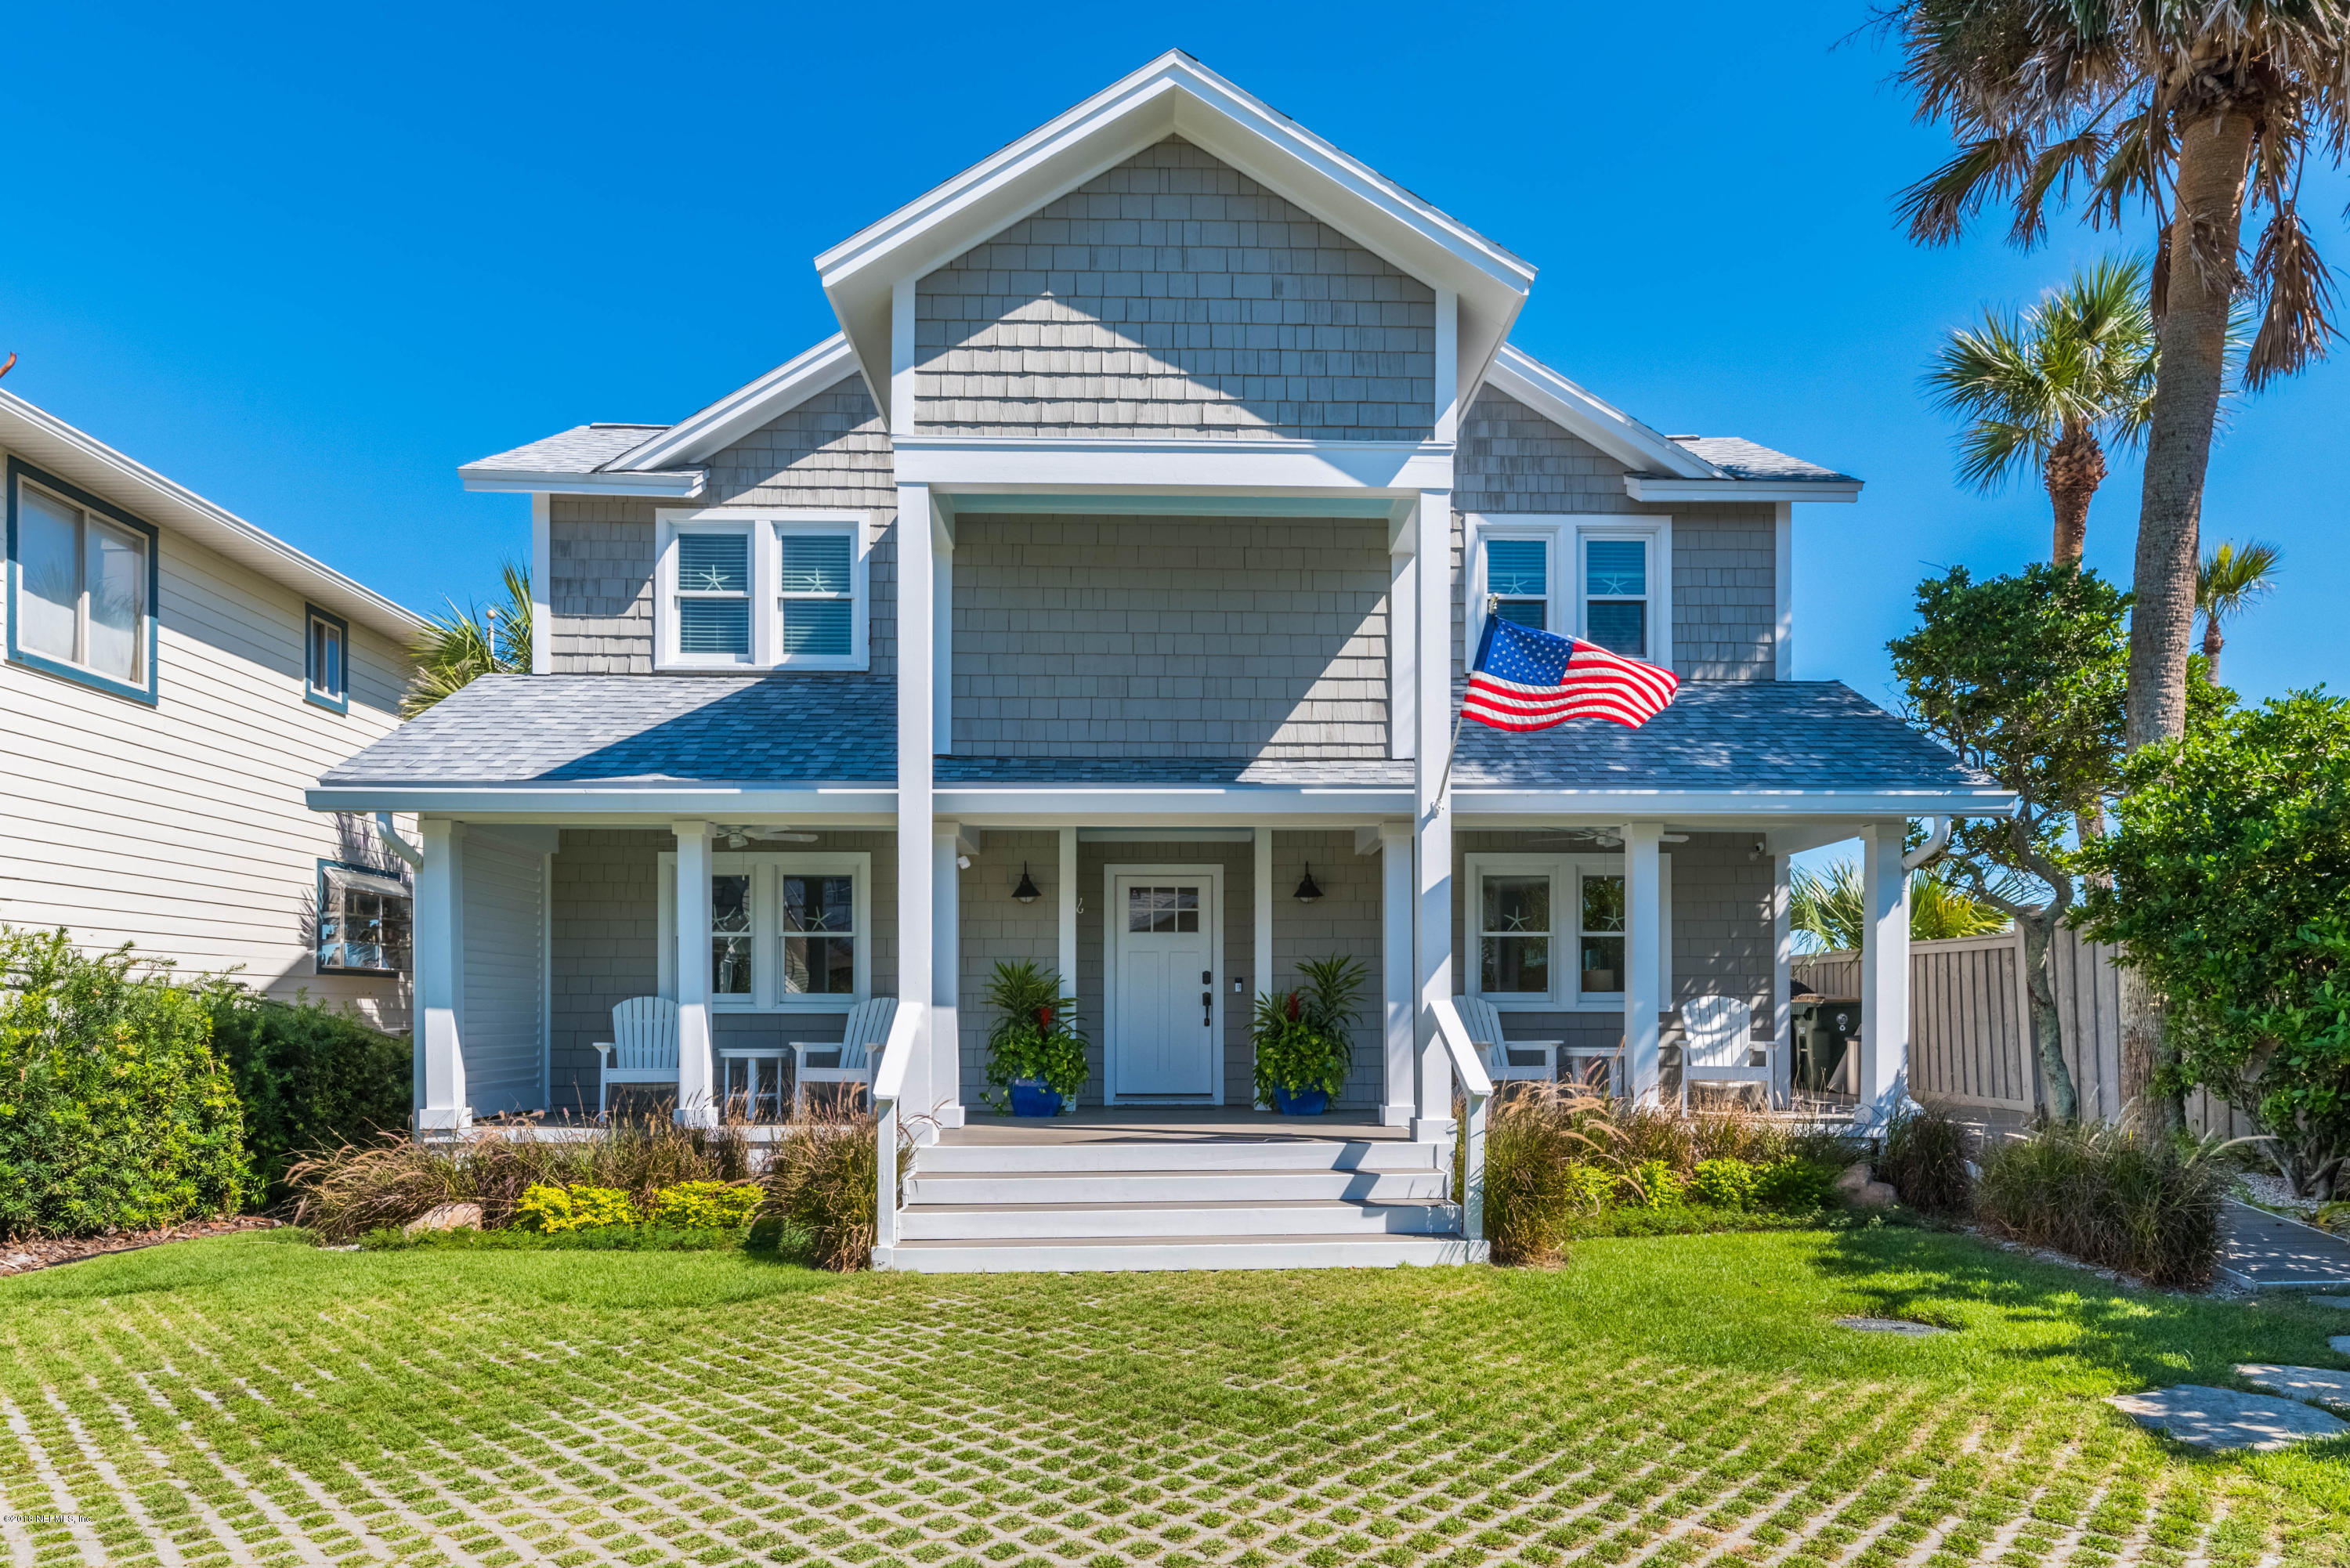 1877 BEACH, ATLANTIC BEACH, FLORIDA 32233, 7 Bedrooms Bedrooms, ,5 BathroomsBathrooms,Residential - single family,For sale,BEACH,966223